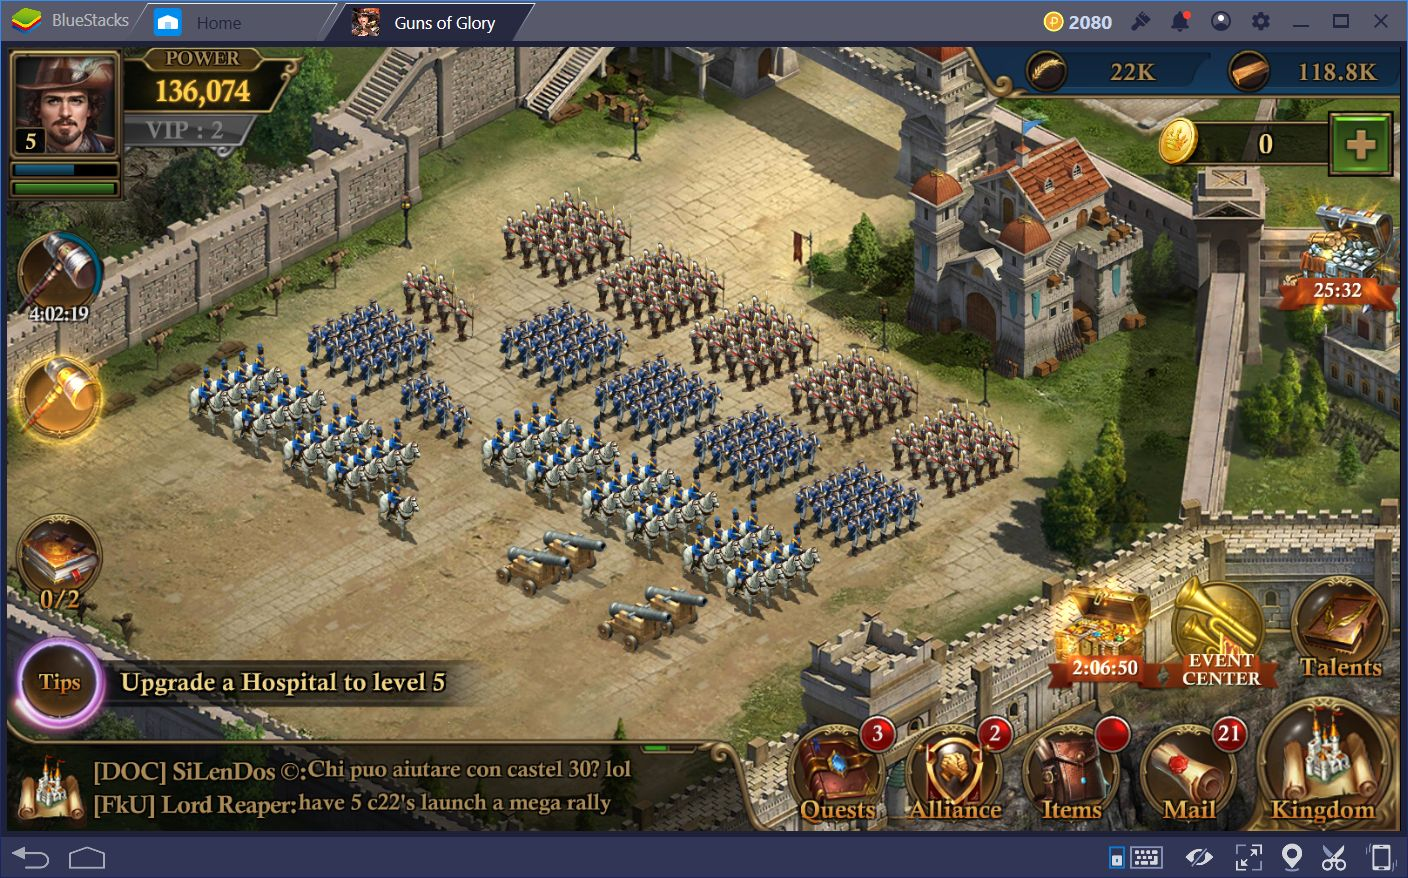 Combat Guide for Guns of Glory Pt  2 | BlueStacks